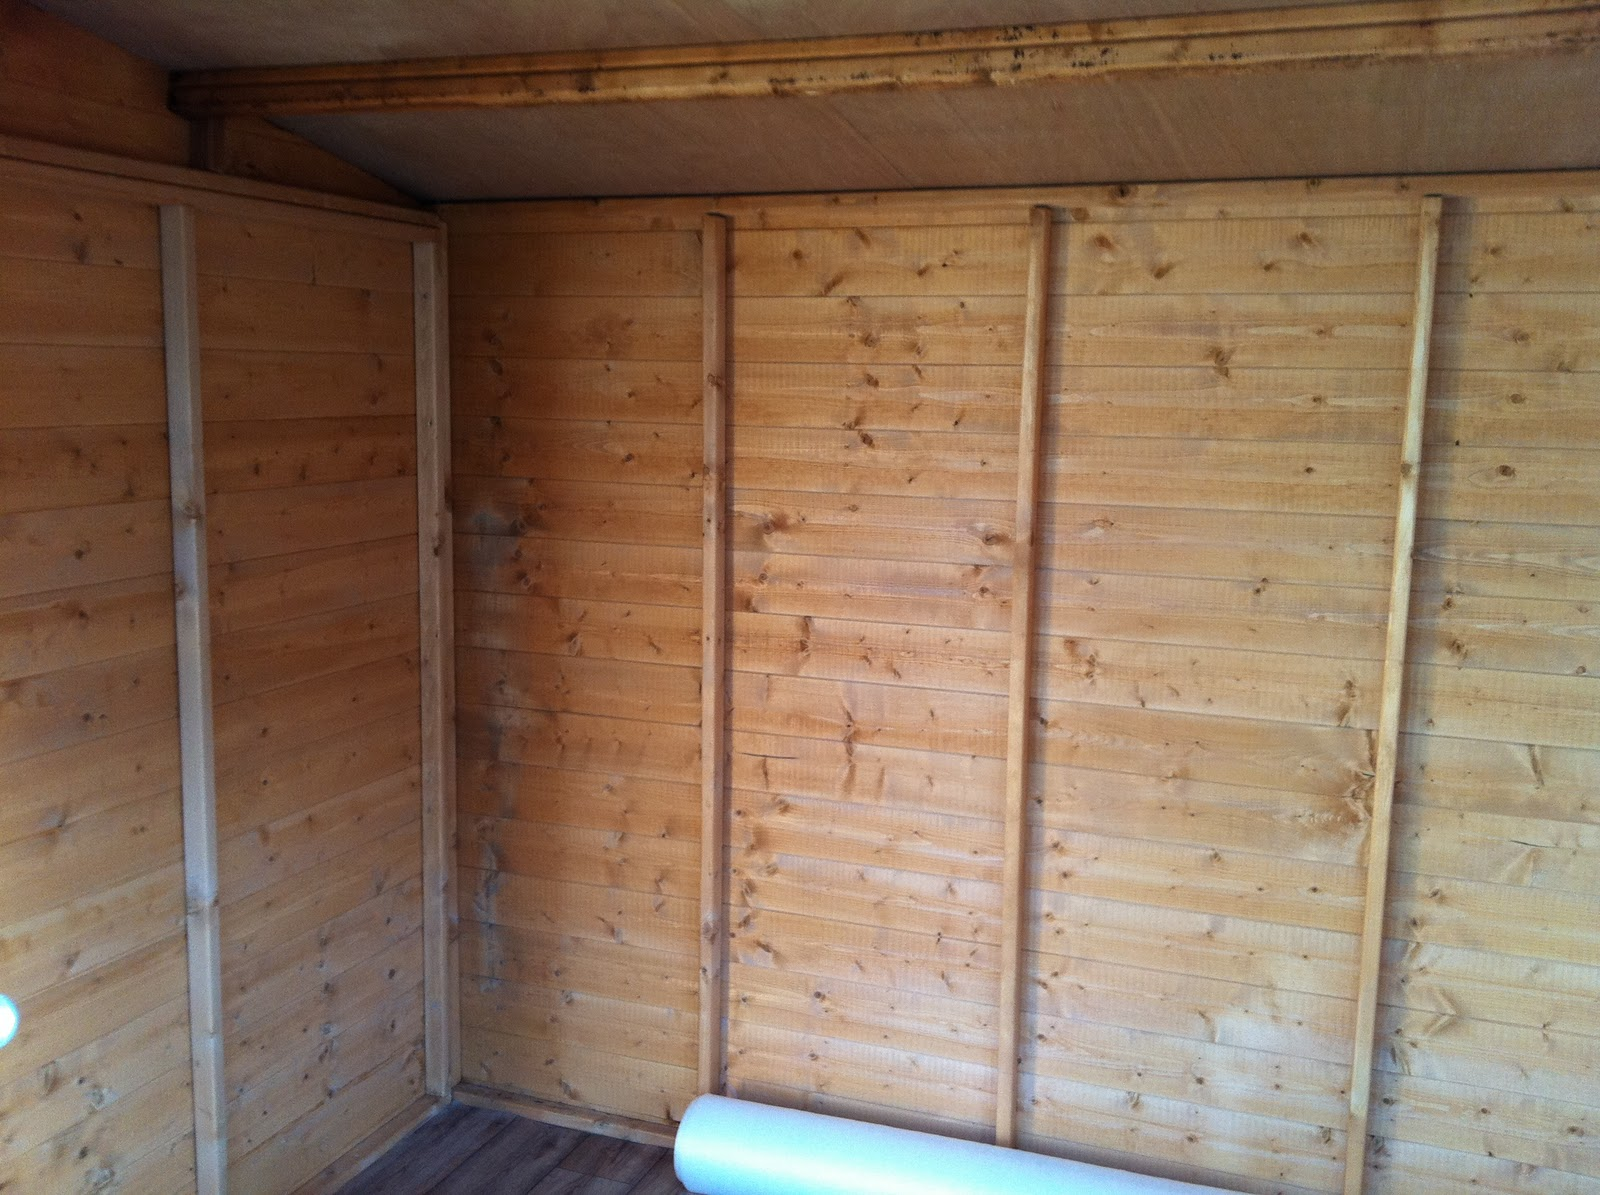 Frazer jess joinery and maintenance garden shed gym for Garden shed gym